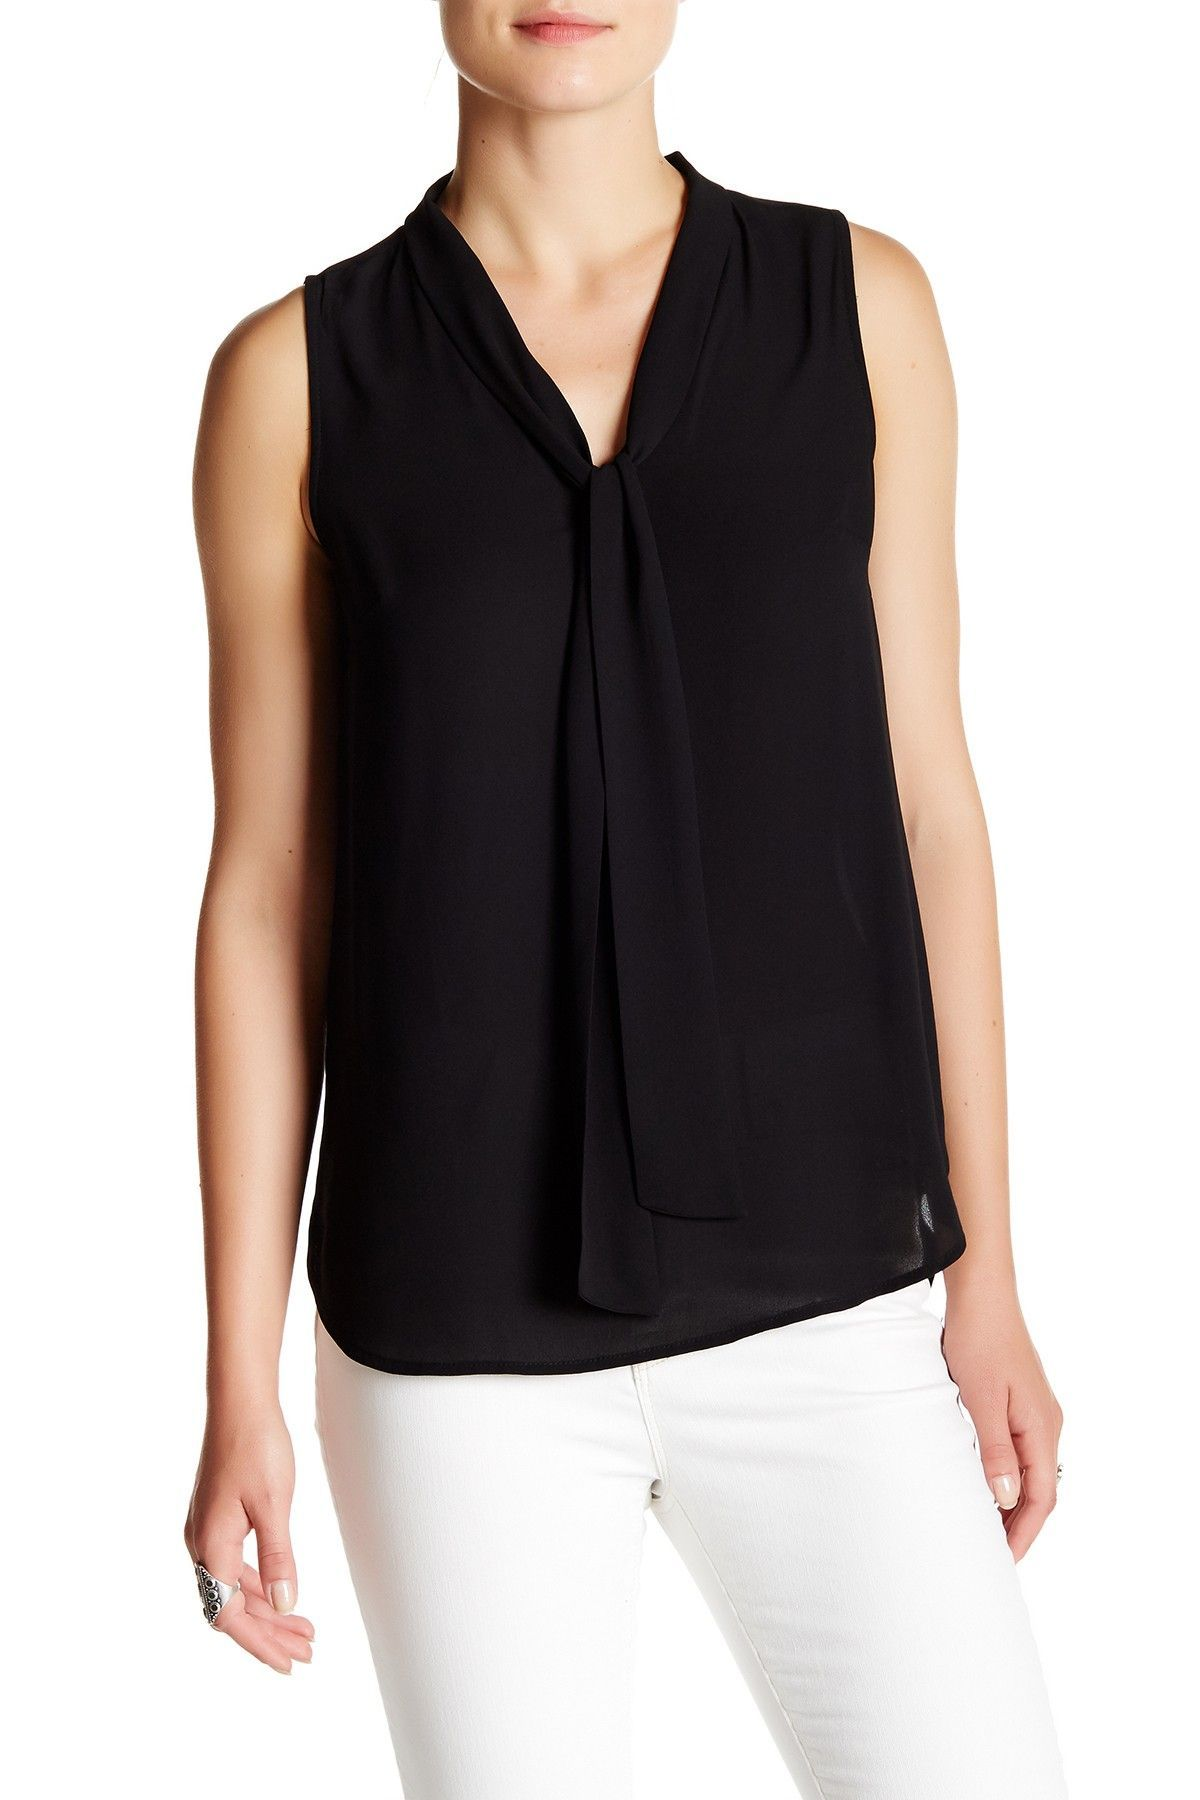 SUSINA Sleeveless Tie Neck Top at Nordstrom Rack Free Shipping